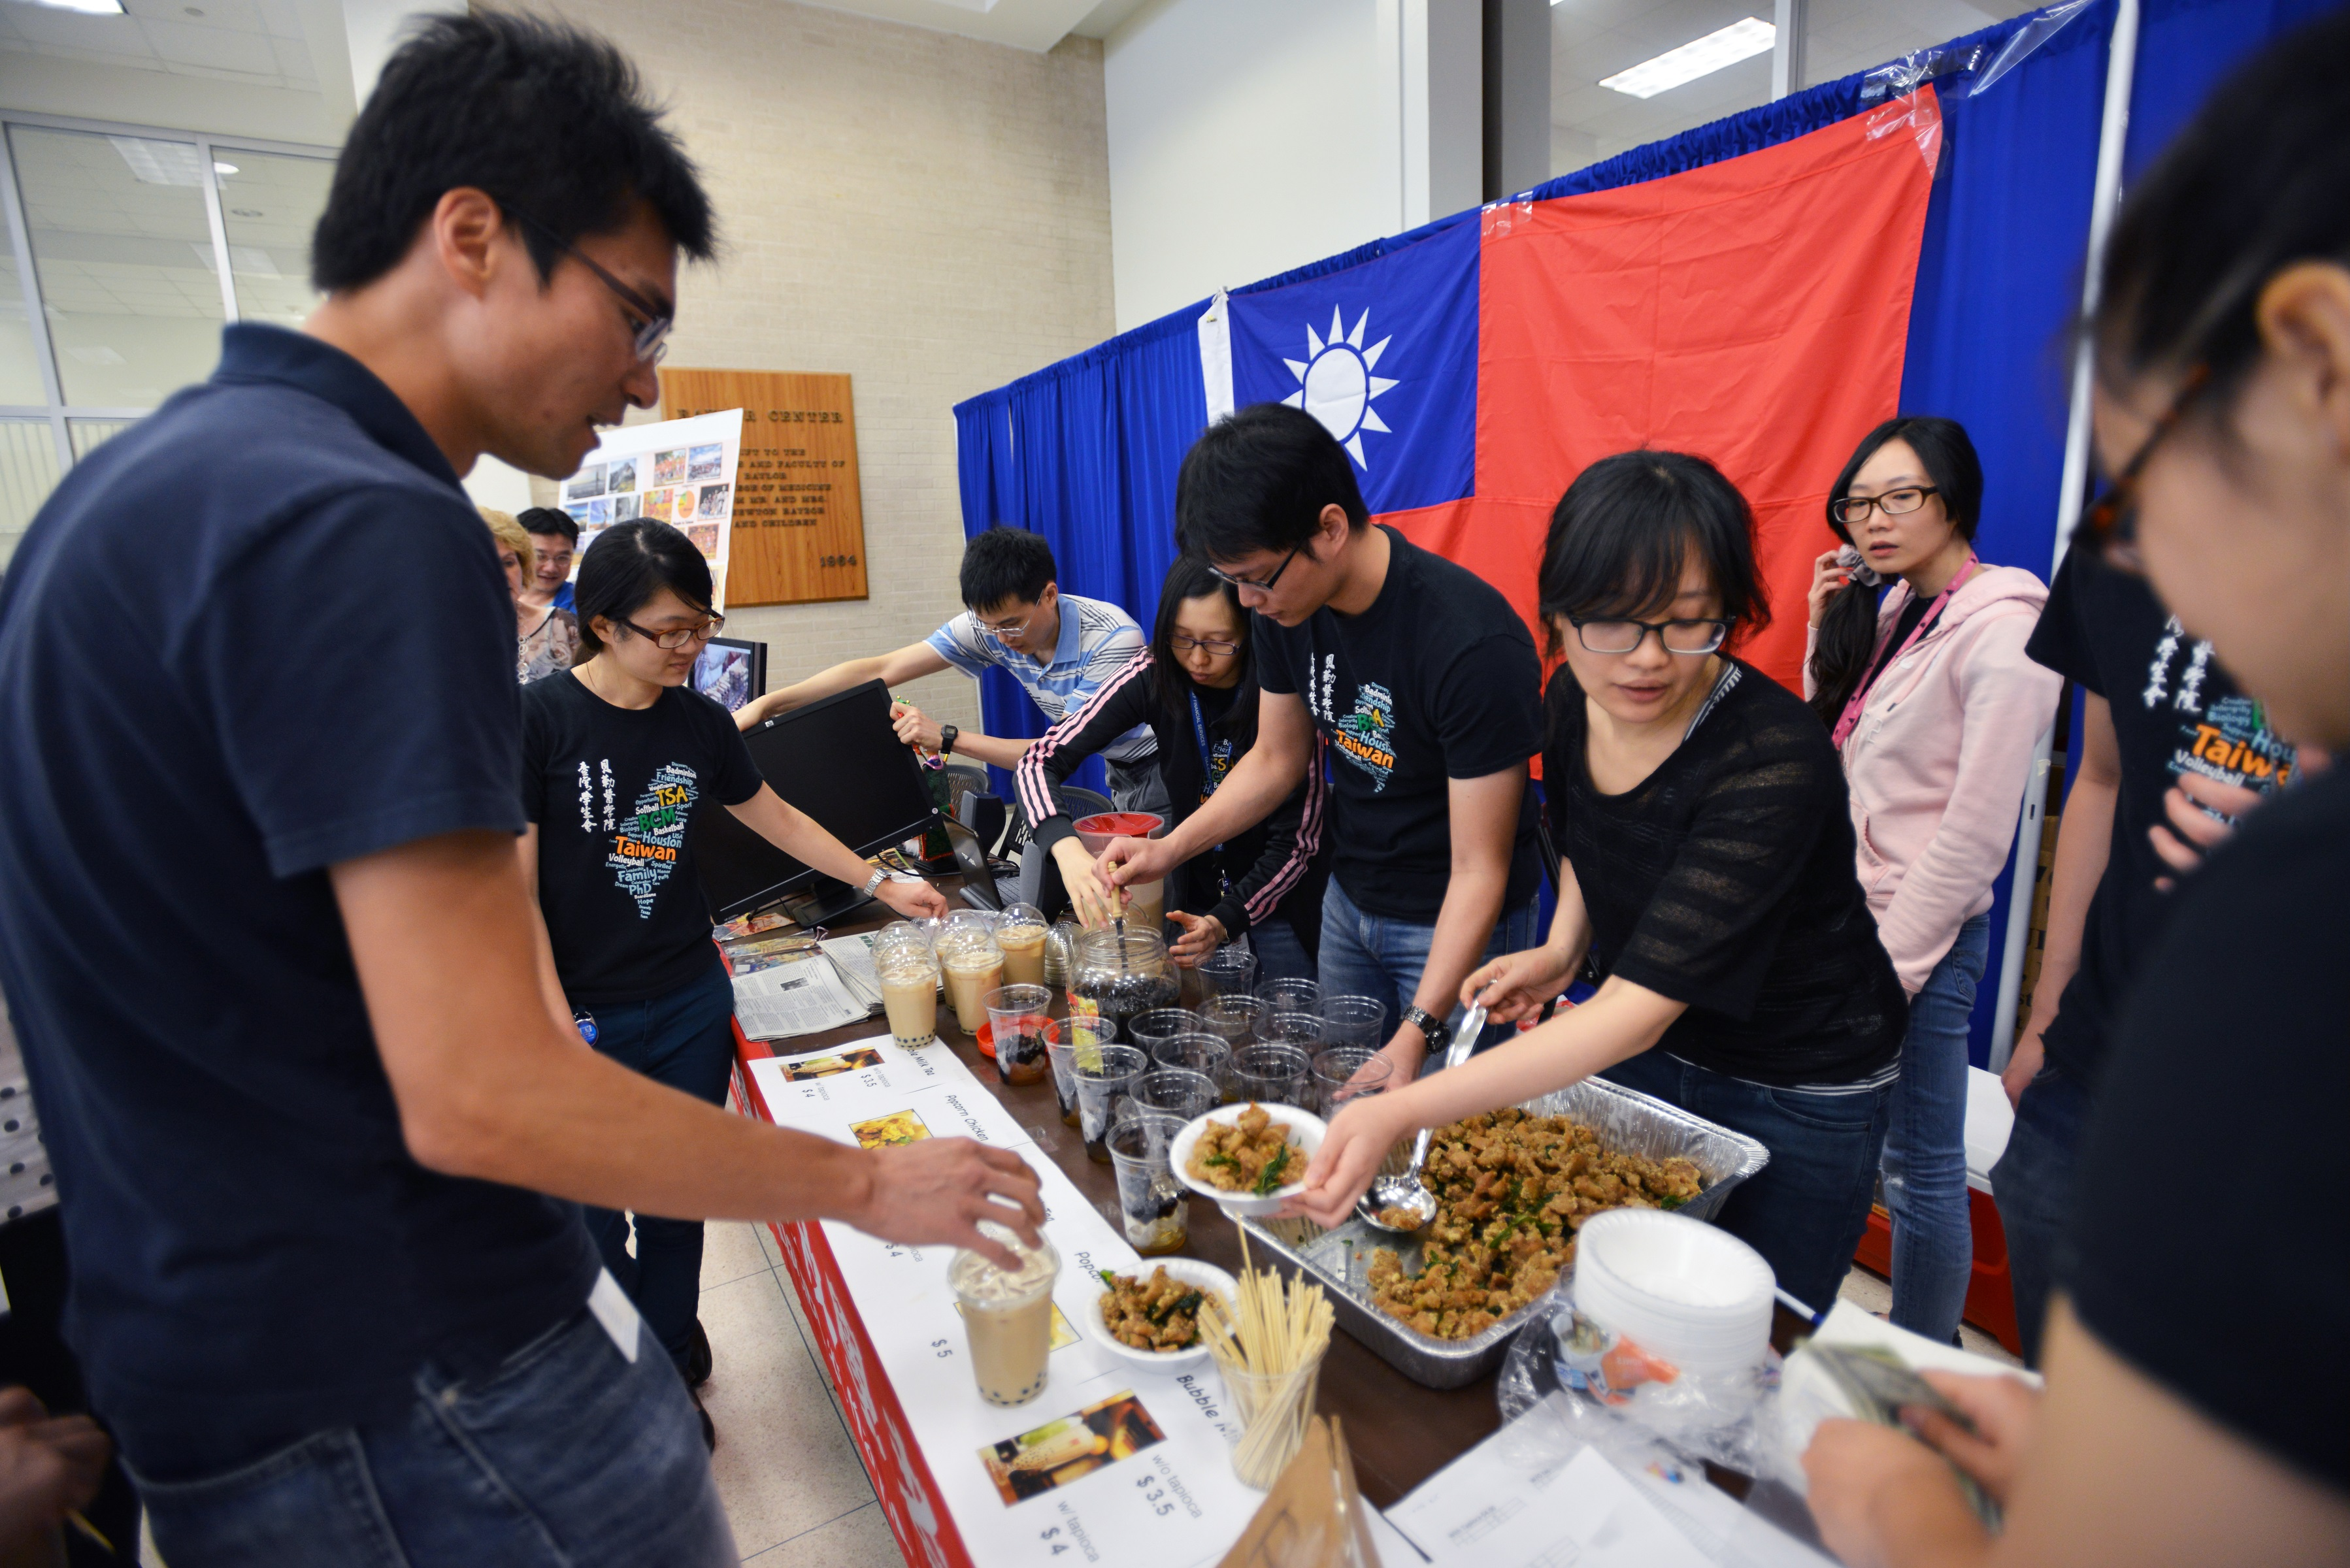 Students and trainees showcasing food from around the world.